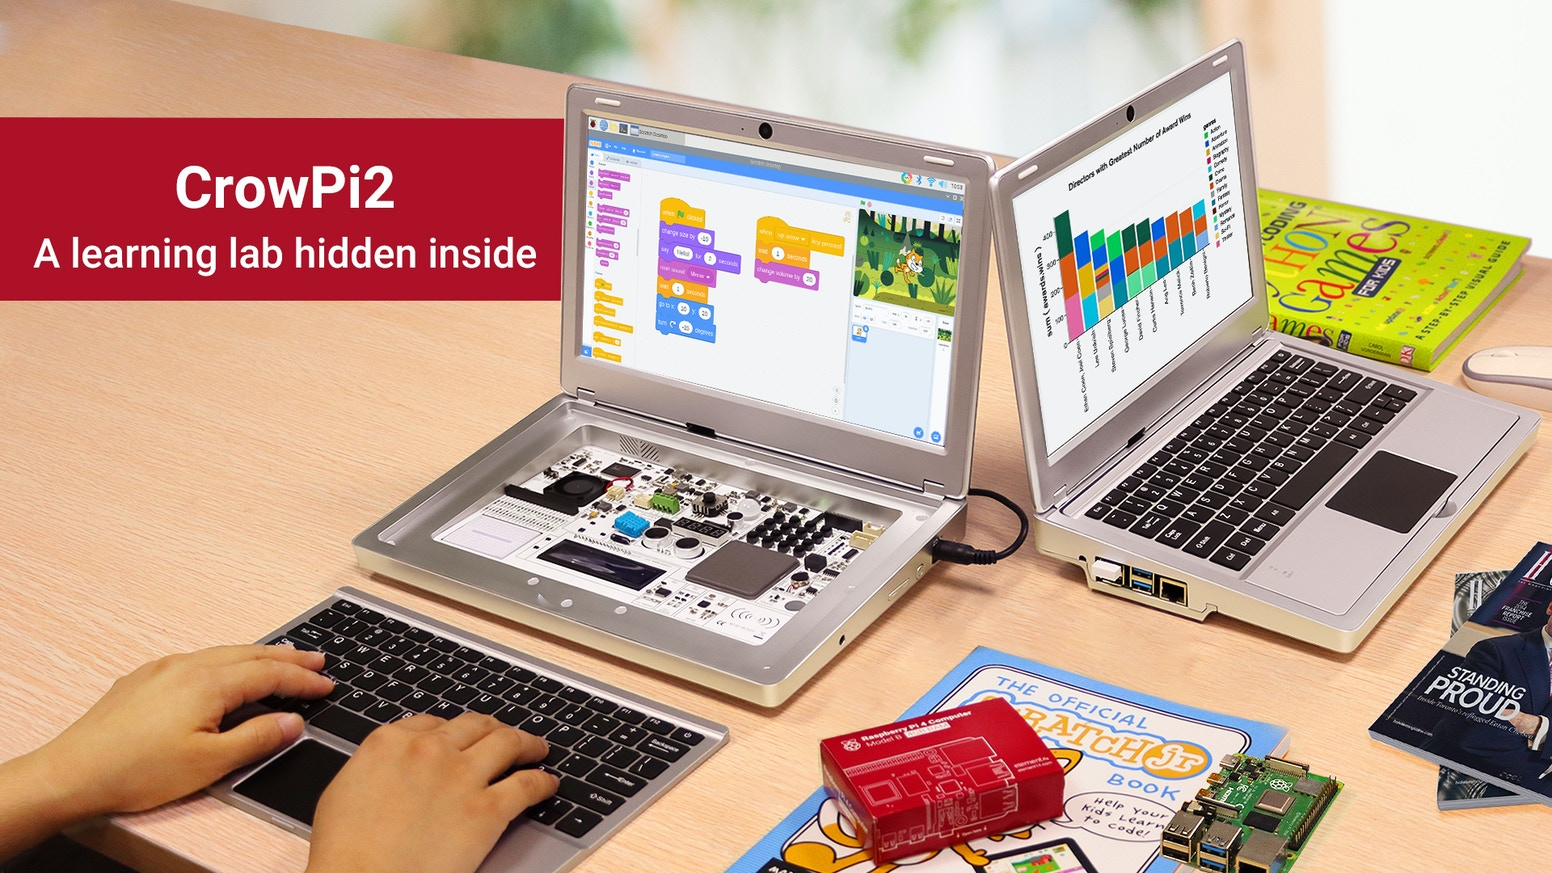 CrowPi2 is an all-in-one device based on Raspberry Pi that is just as suitable for STEM education, portable laptop.